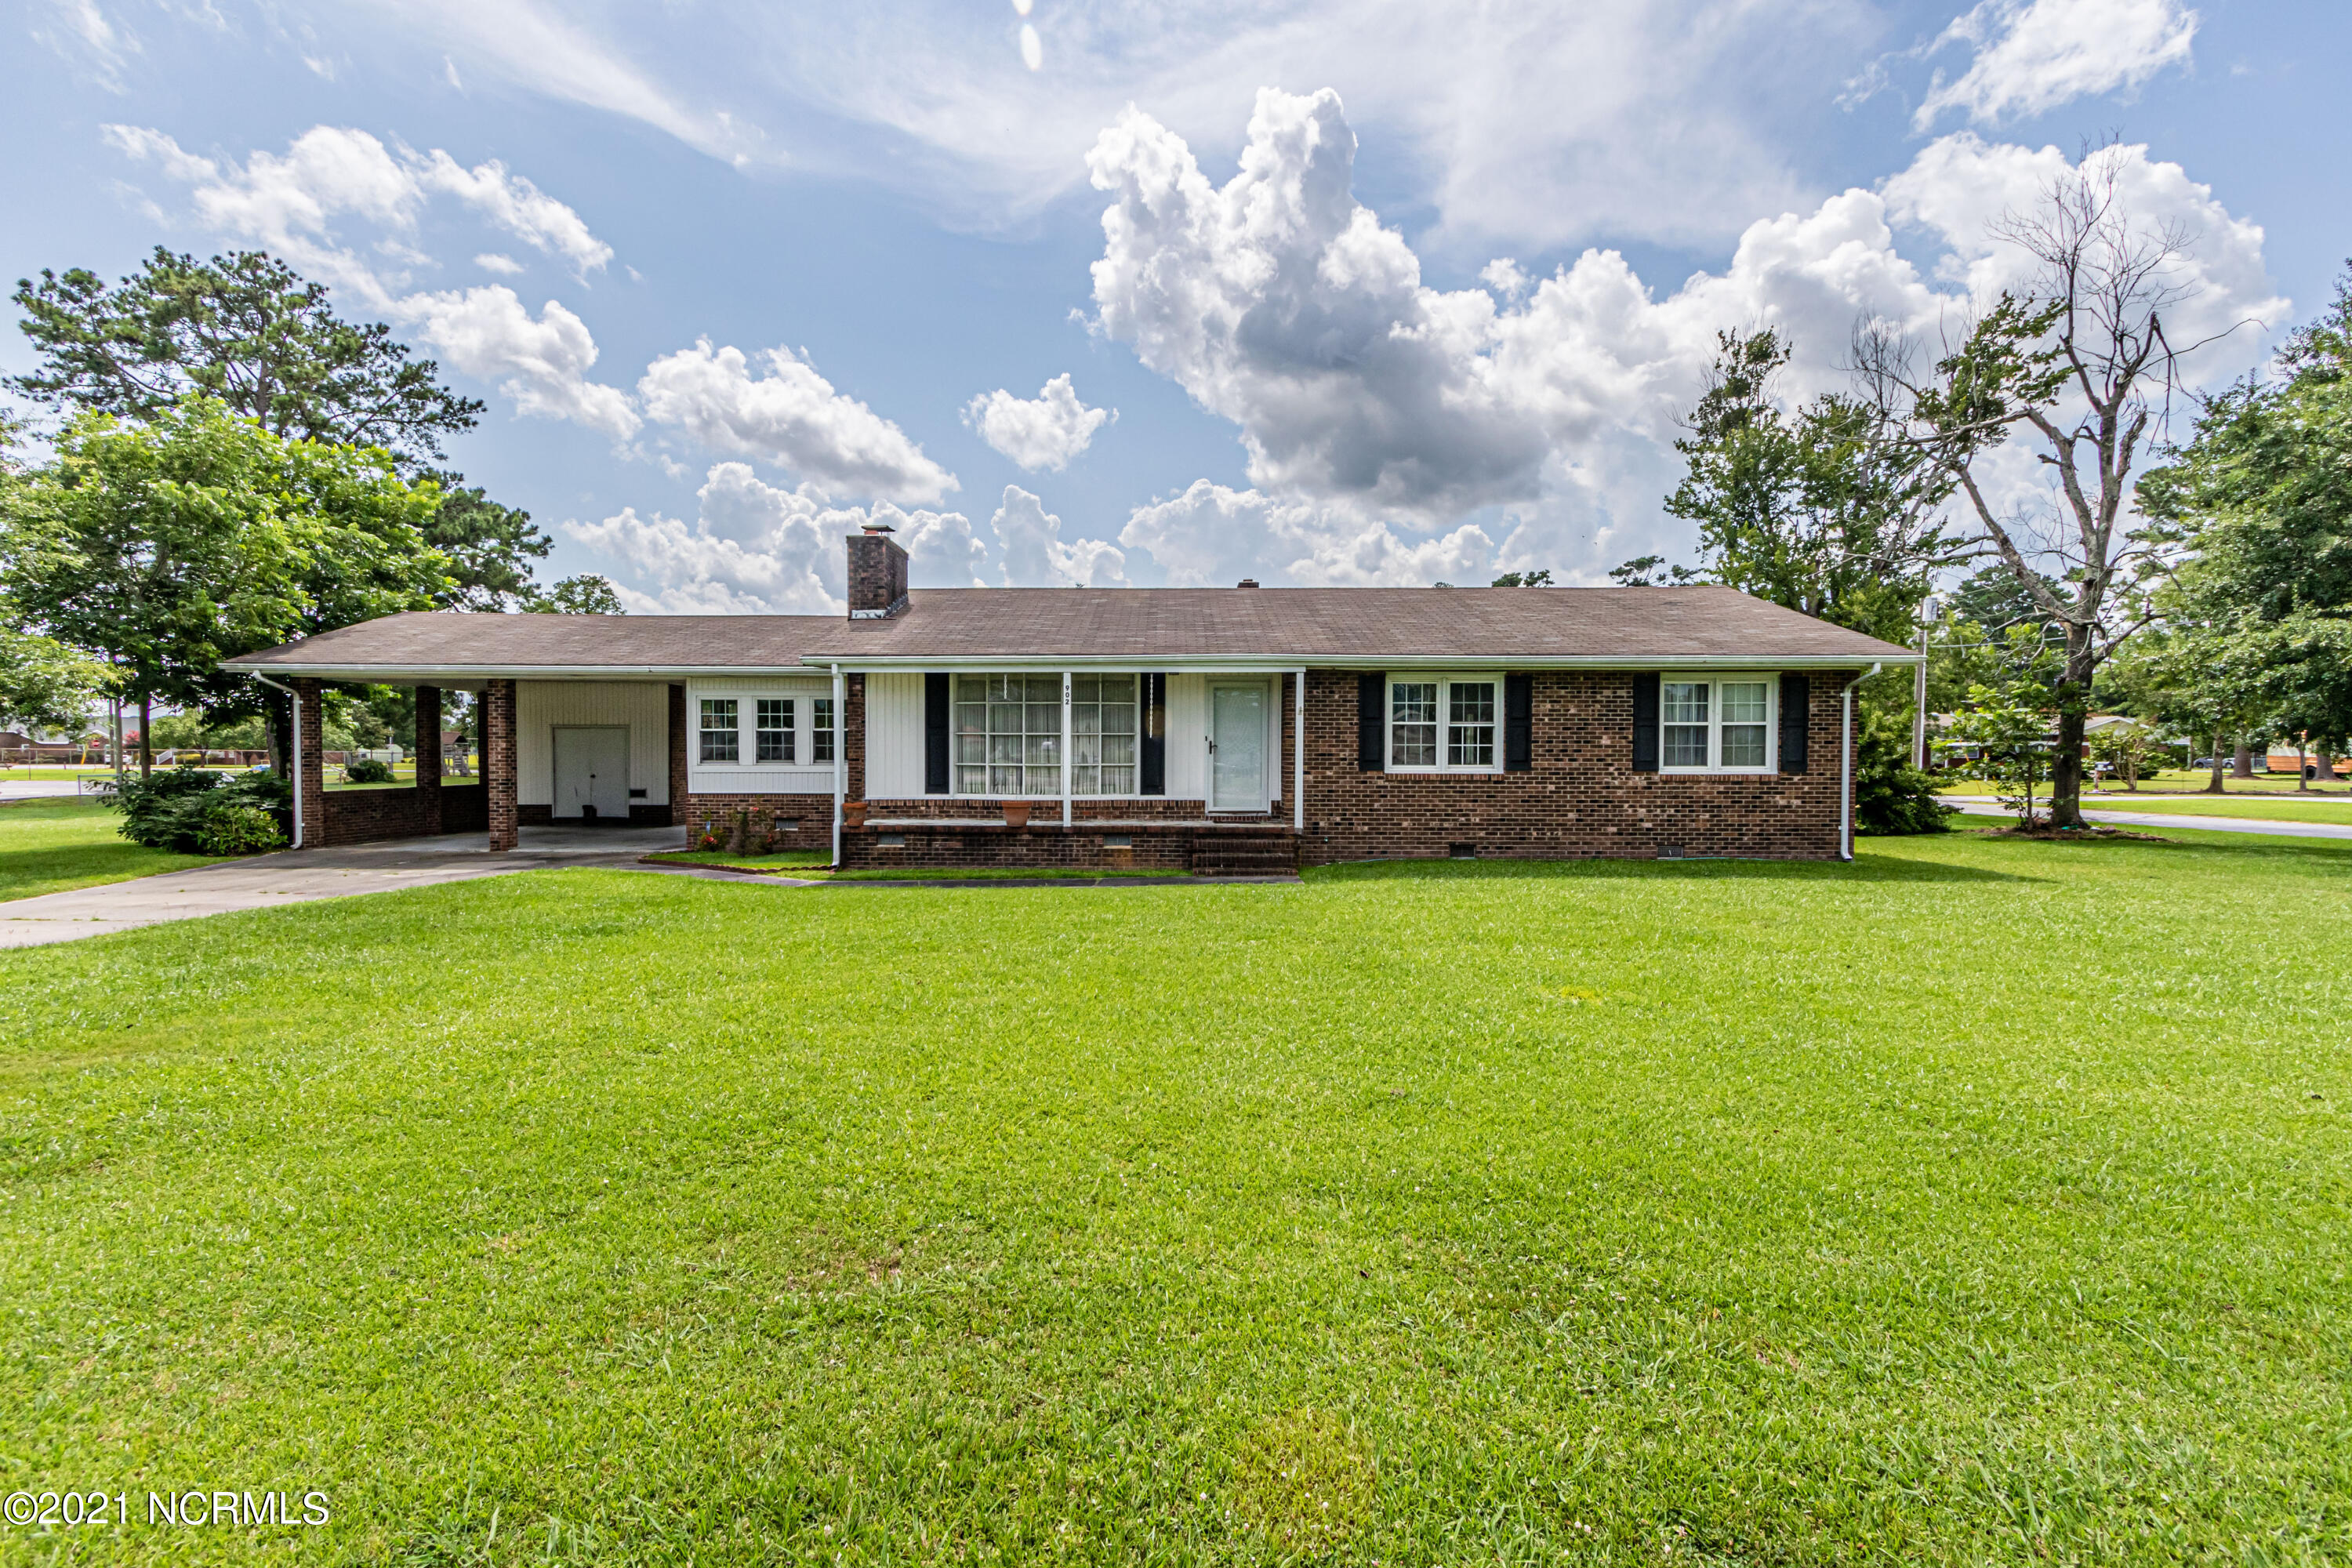 Beautiful 3 Bedroom brick home just 15 minutes from Jacksonville and 25 minutes from Emerald Isle beach!  Loacted in the heart of the quite town of Maysville!  Well established  and well maintained large yard for children and pets to play!  Schedule your showing today!!!!